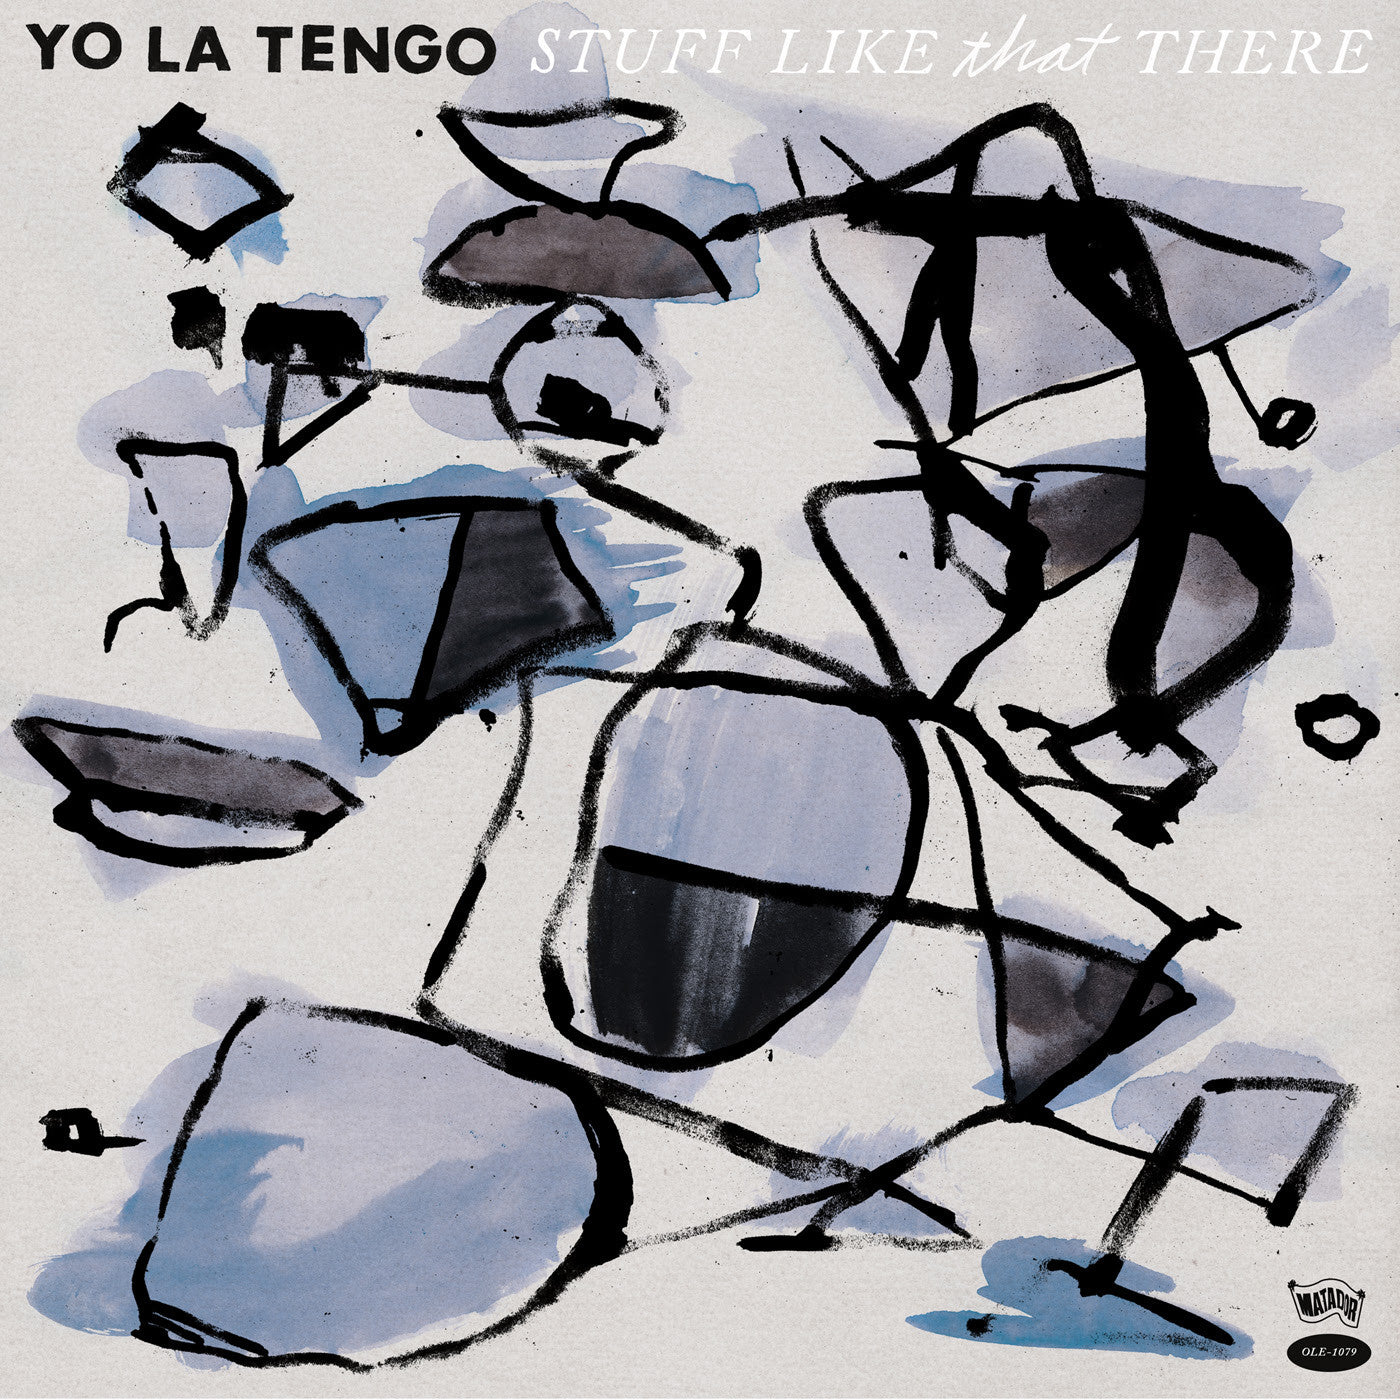 YO LA TENGO - STUFF LIKE THAT THERE LP